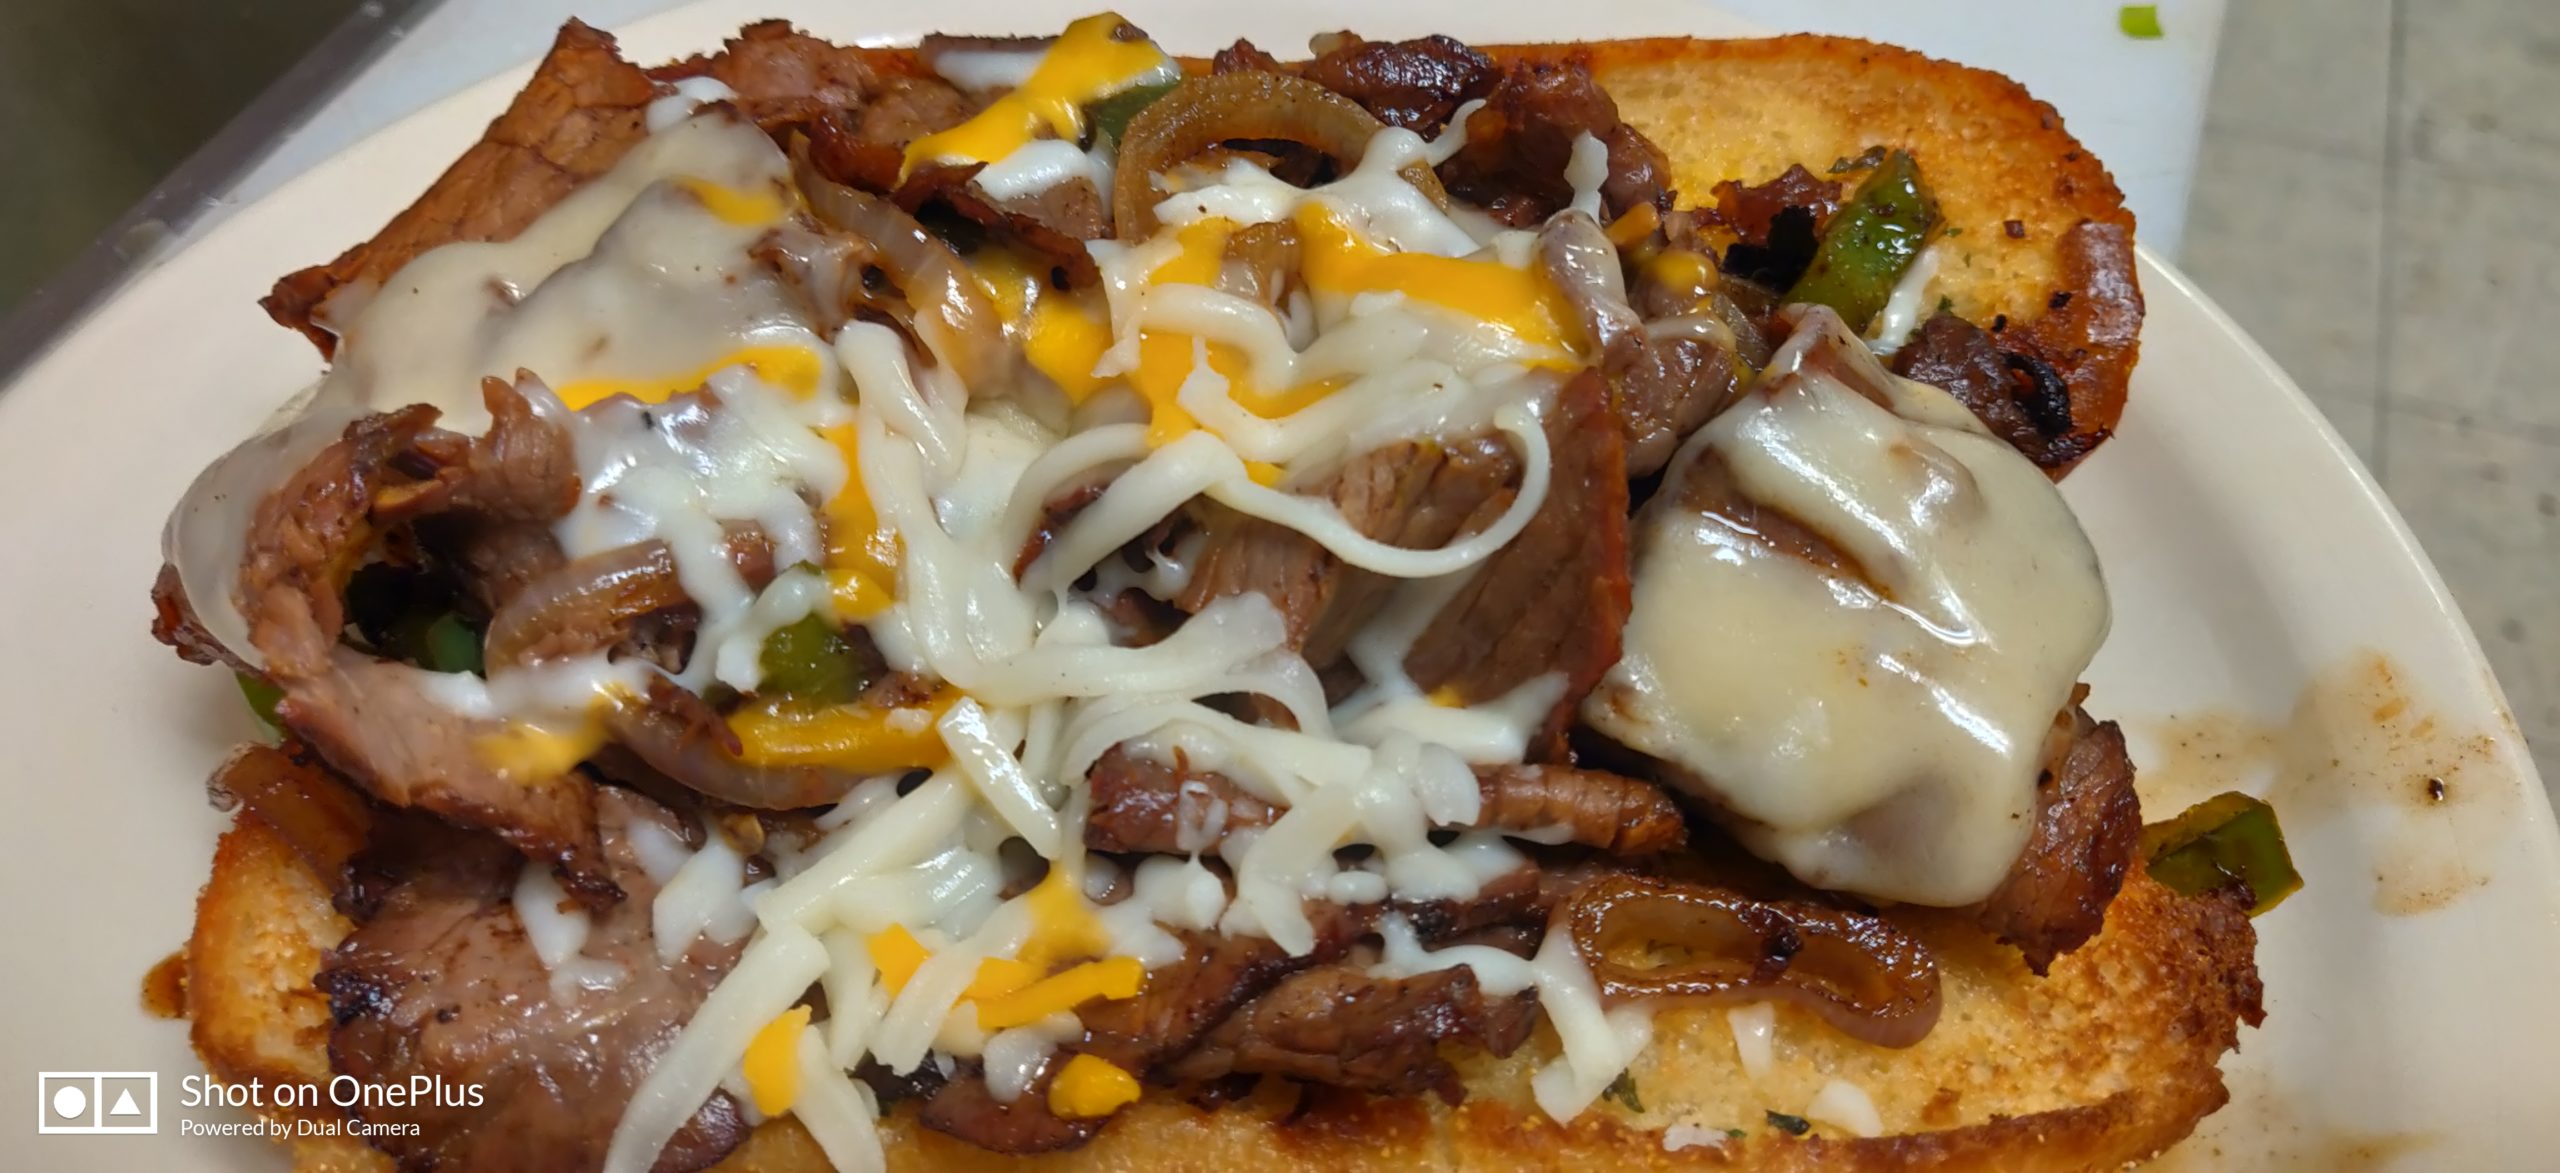 pibbs hot sandwich philly cheese steak cheese bellpeppers grilled red onions happy valley anderson olinda rd